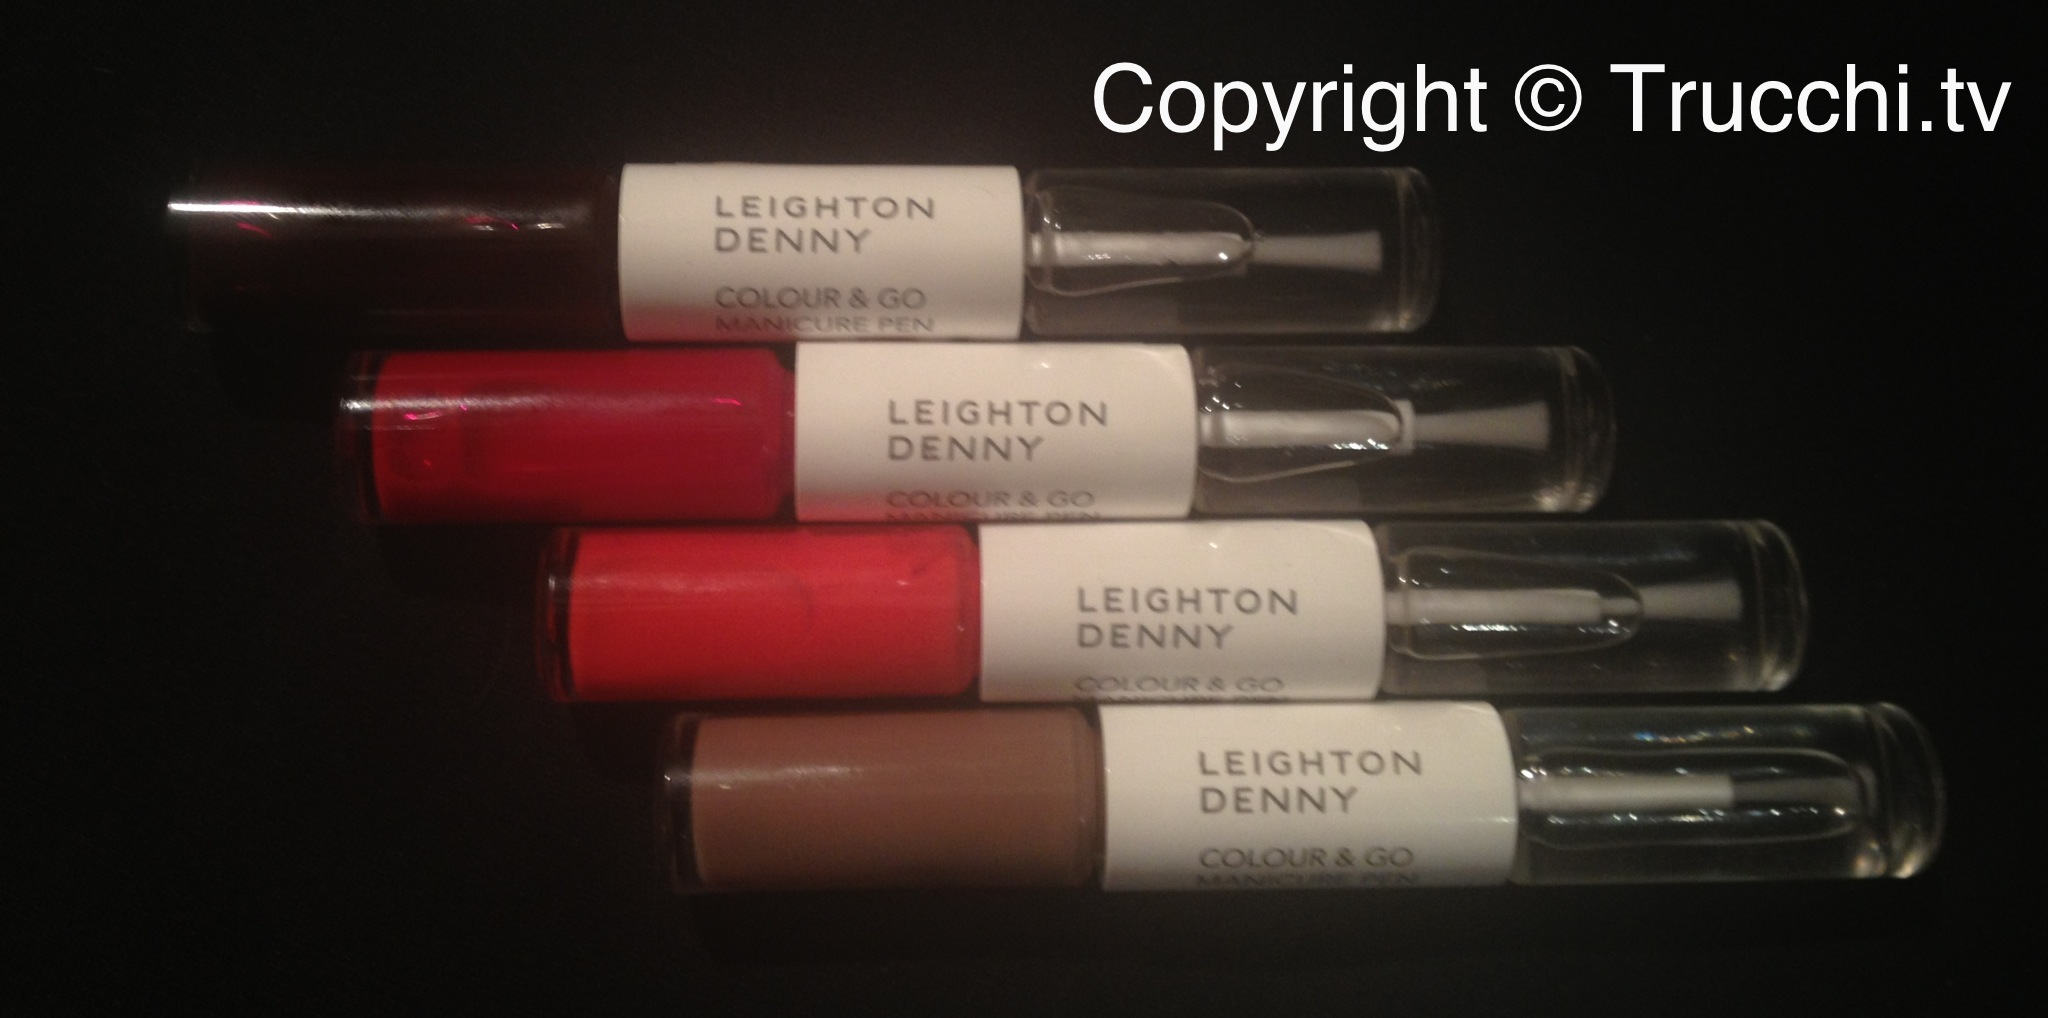 smalto Leighton Denny colour and go manicure pen